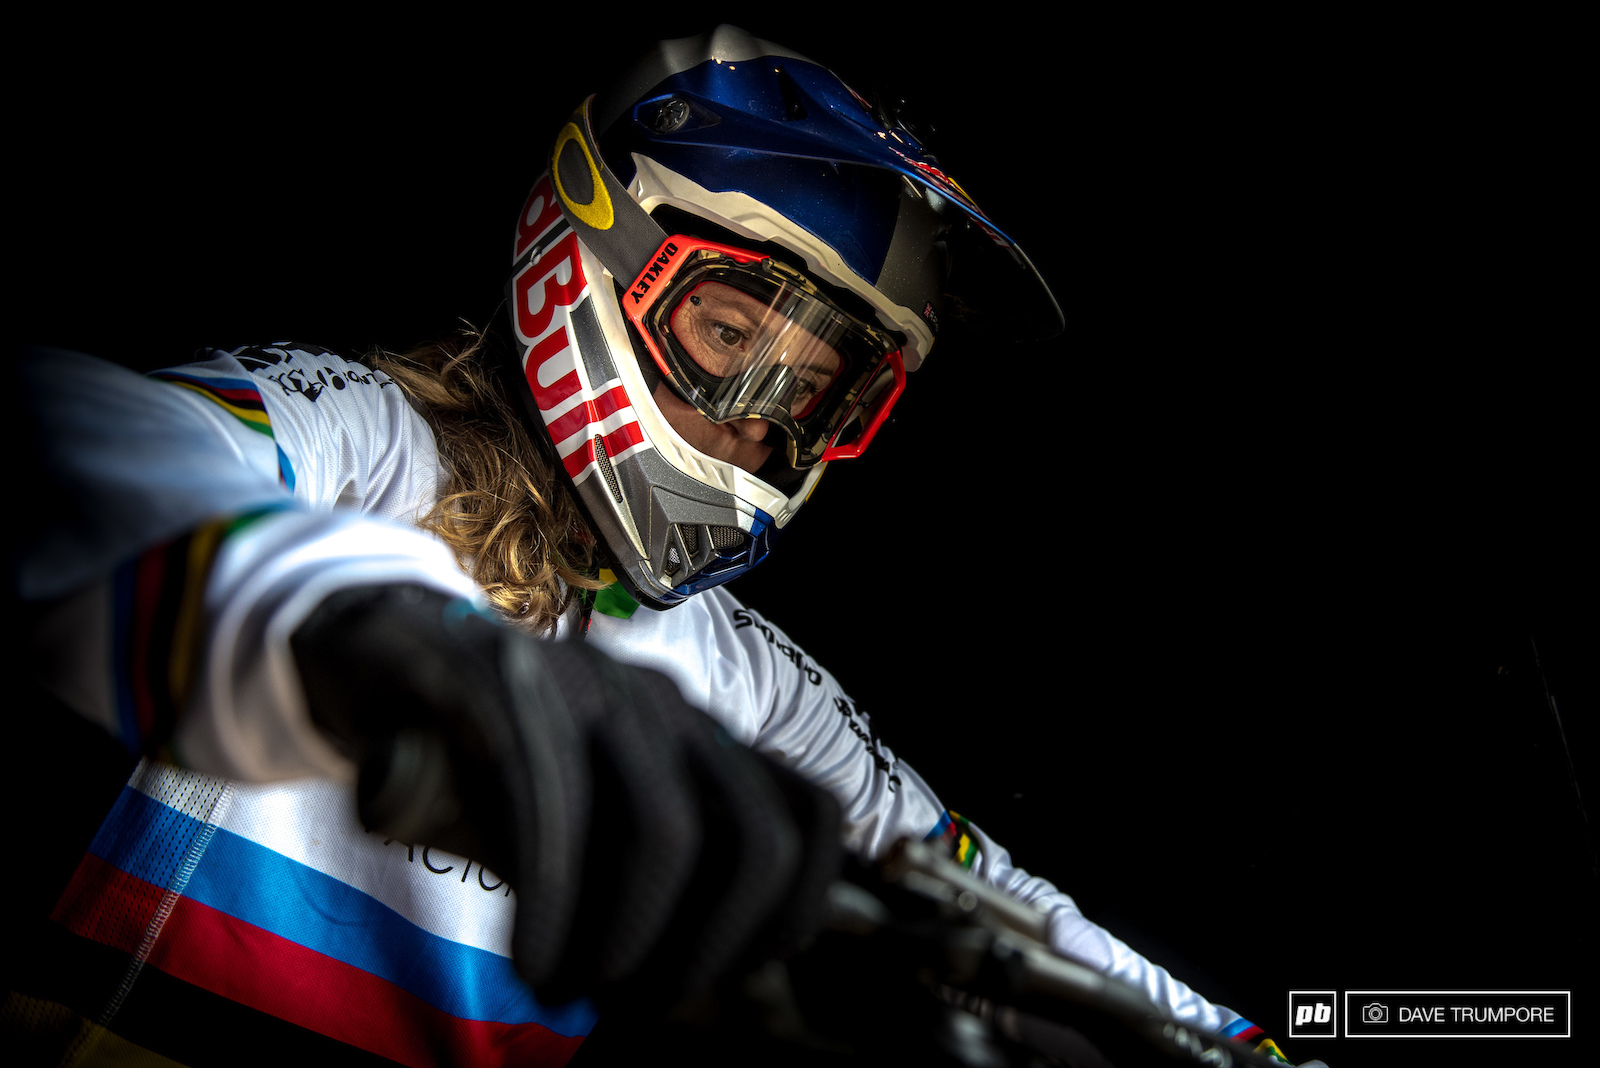 Rachel Atherton calms the nerves before taking the plunge into the beats of a track in MSA.